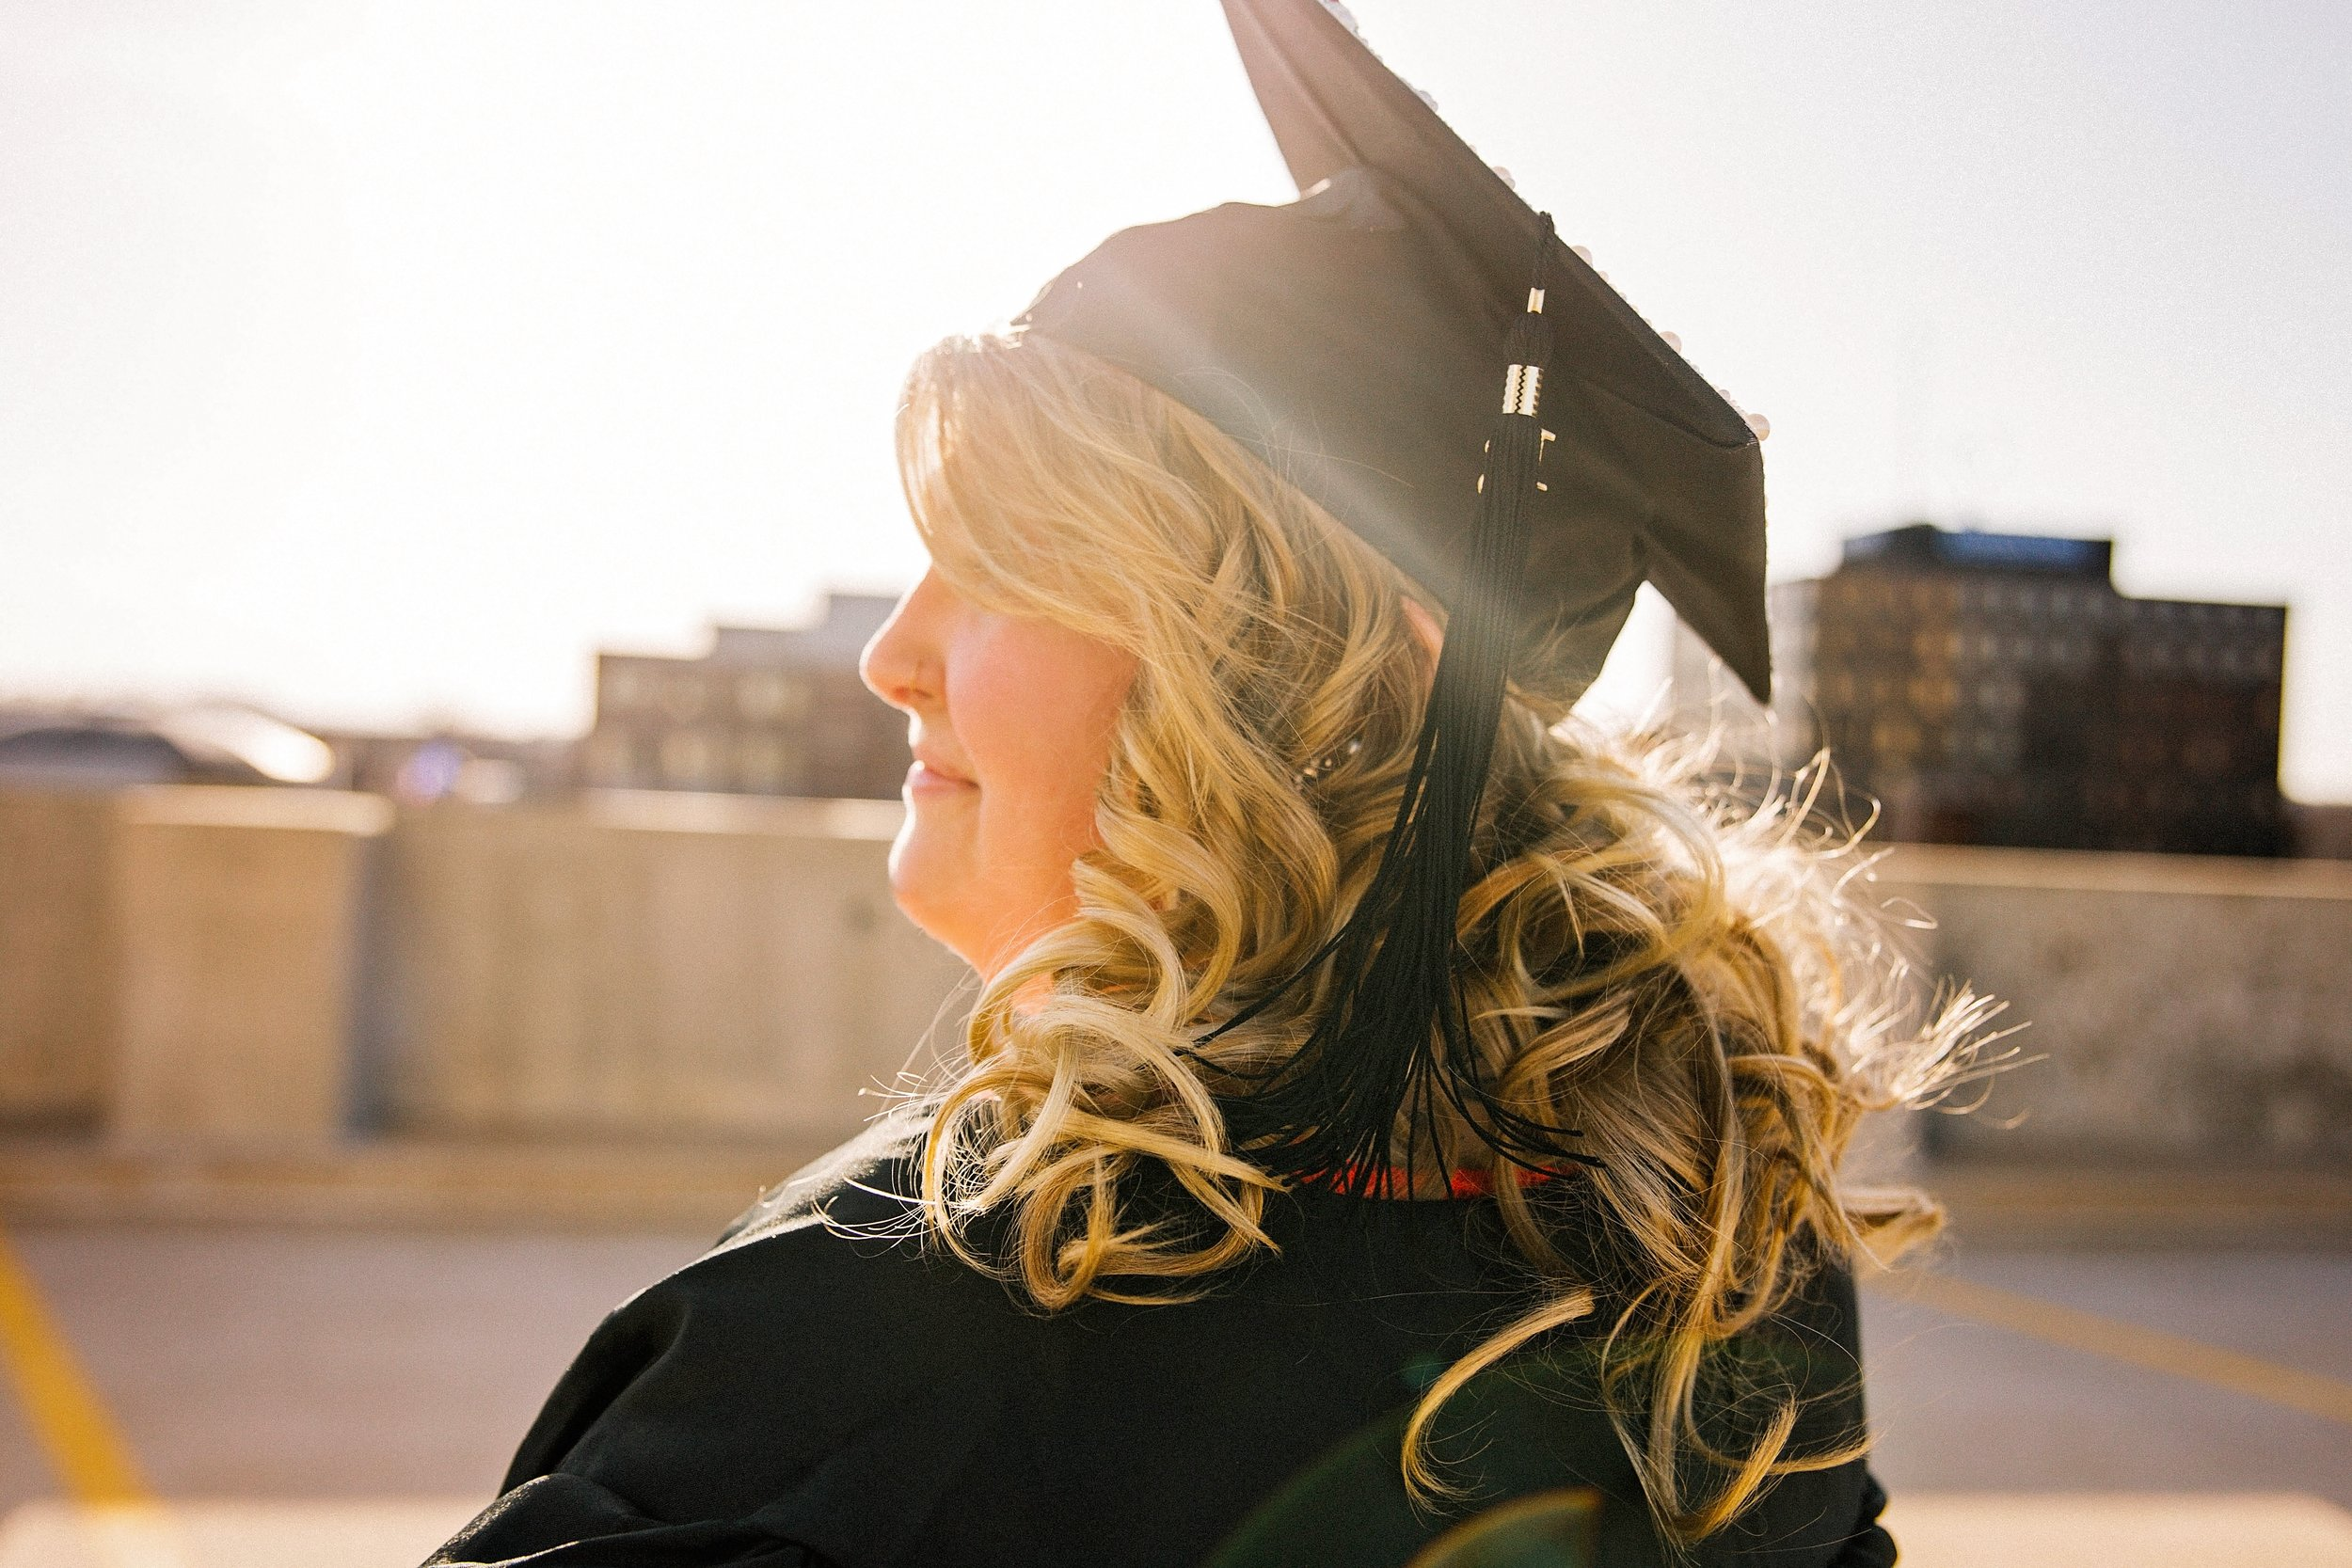 Underemployment in the US Espeically Effects Women - Underemployment is characterized by workers taking jobs for which they are overqualified, companies underutilizing a worker's skills, or employers assigning tasks that leaves workerers idle. After 10 years, 75% of people who are underemployed as new graduates remain underemployed. For women, the rates of underemployment are even worse, particularly for women in STEM. This is concerning in 2018, a time in which women are more likely to go to college and graduate than men. And yet, the wage gap is still existing and almost 50% of female graduates are overqualified for the jobs they have.